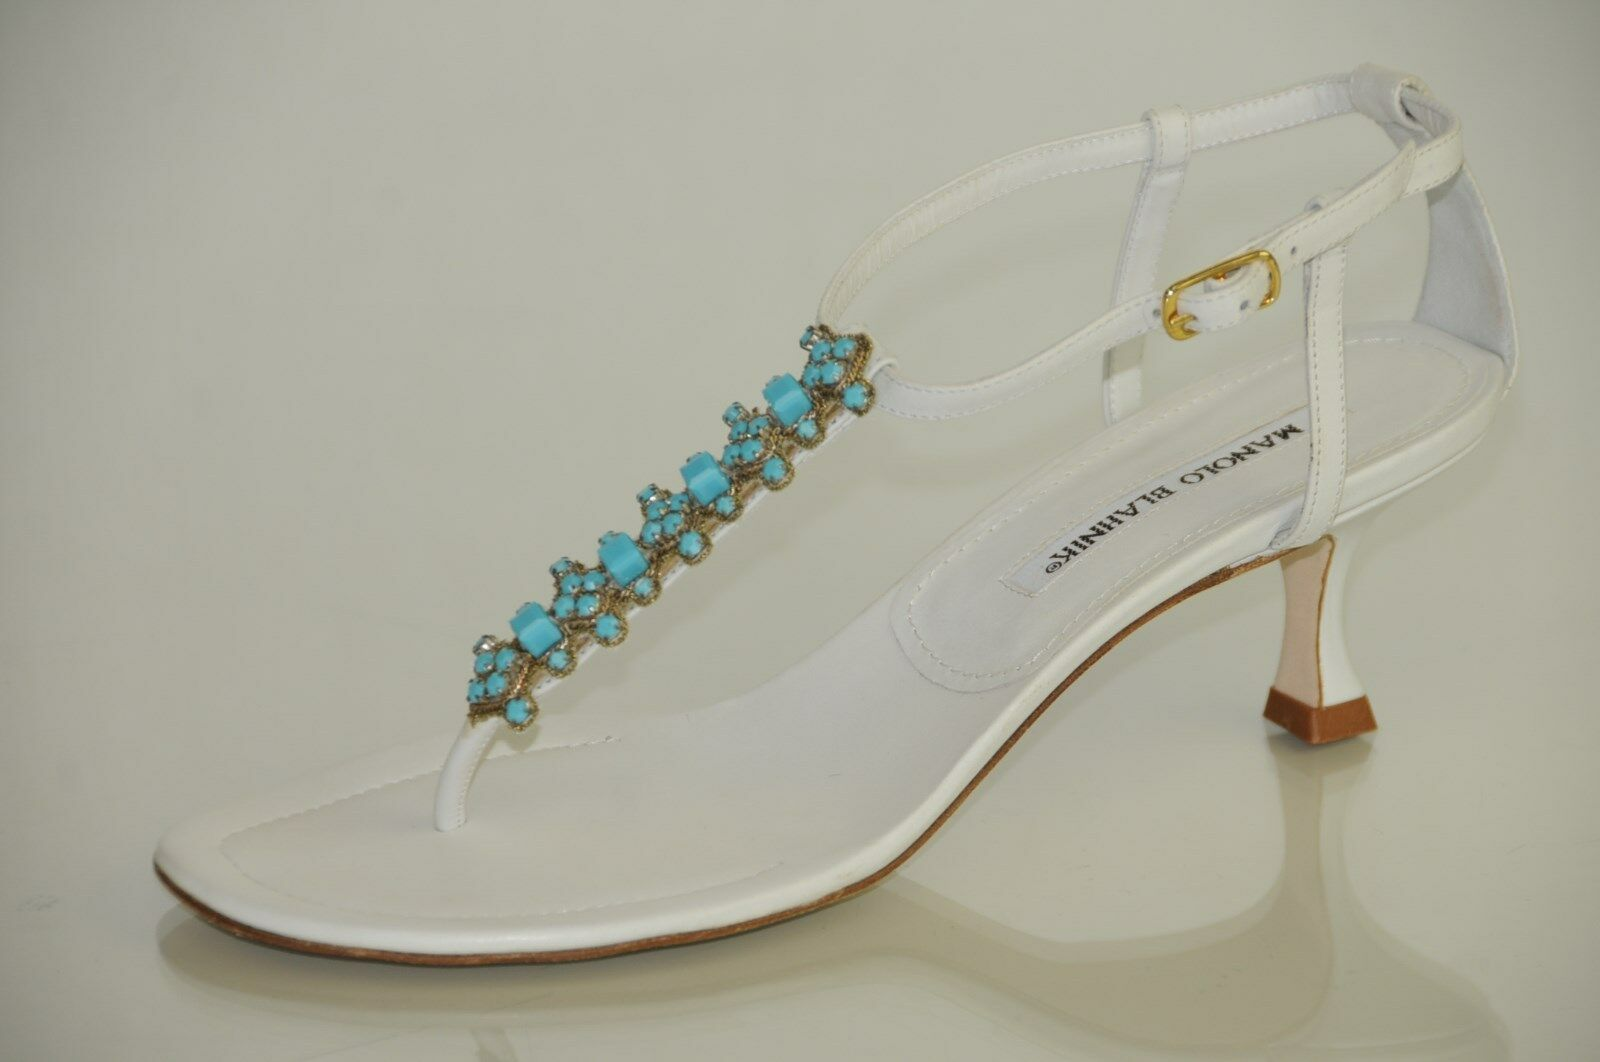 New MANOLO BLAHNIK WHITE Turquoise Jeweled Thong Thong Thong SANDALS Kitten Heels 37 6.5 bd0d52